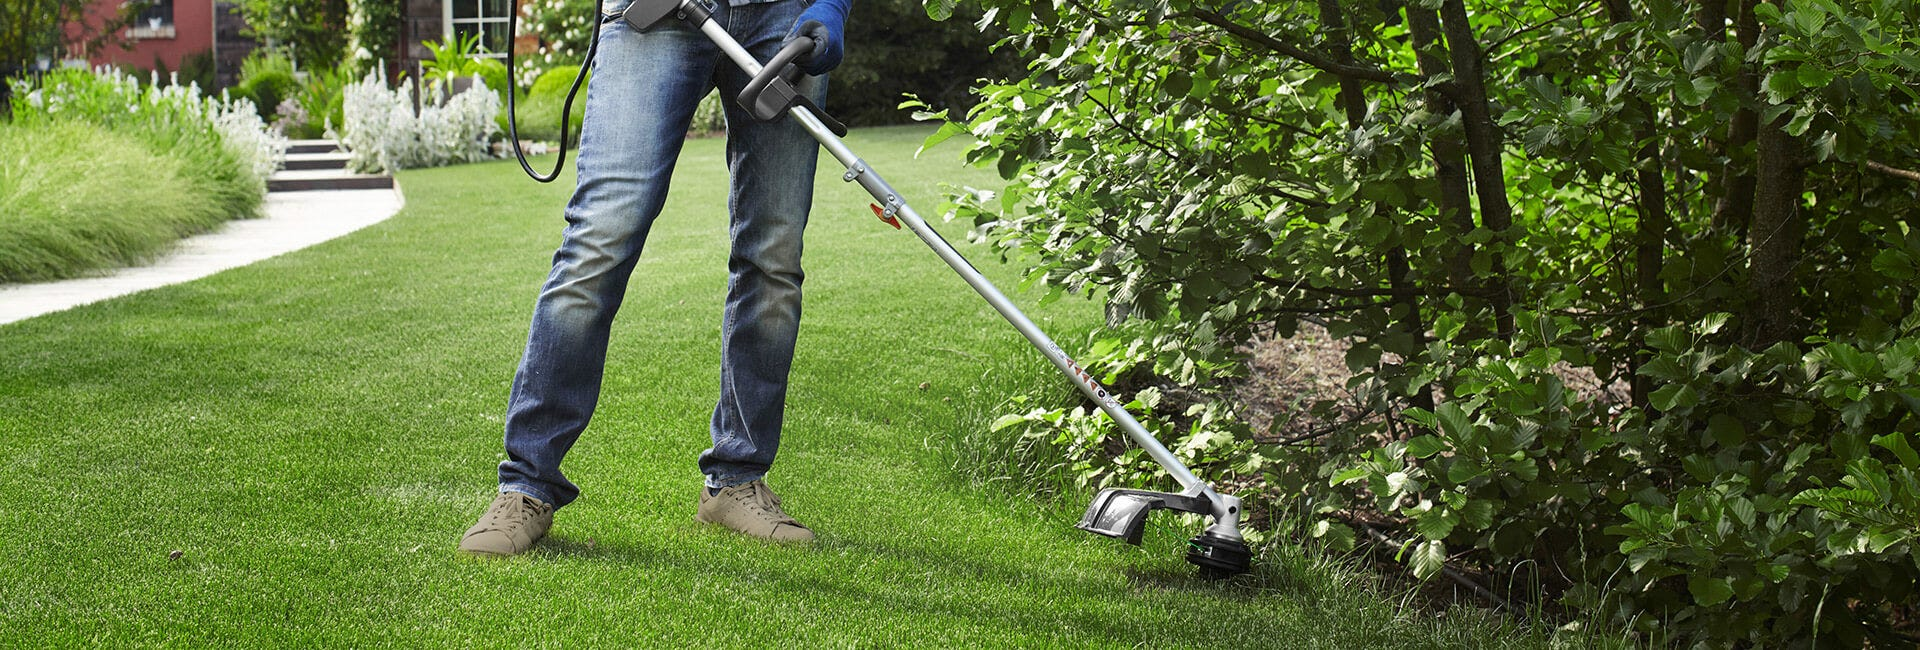 Lawn trimmers & brushcutters